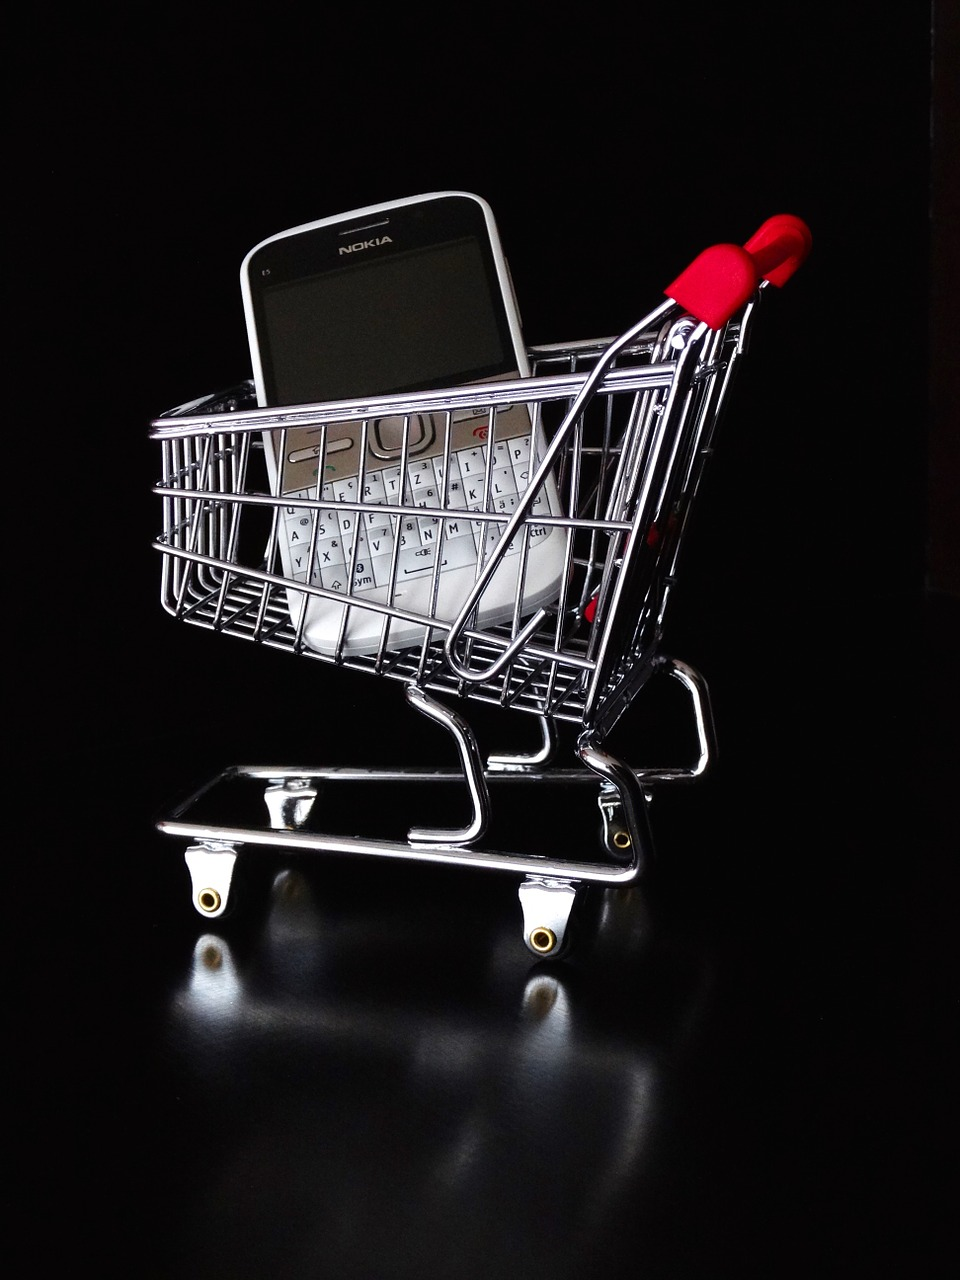 The future of online shopping is intertwined with the emergence of mobile computing